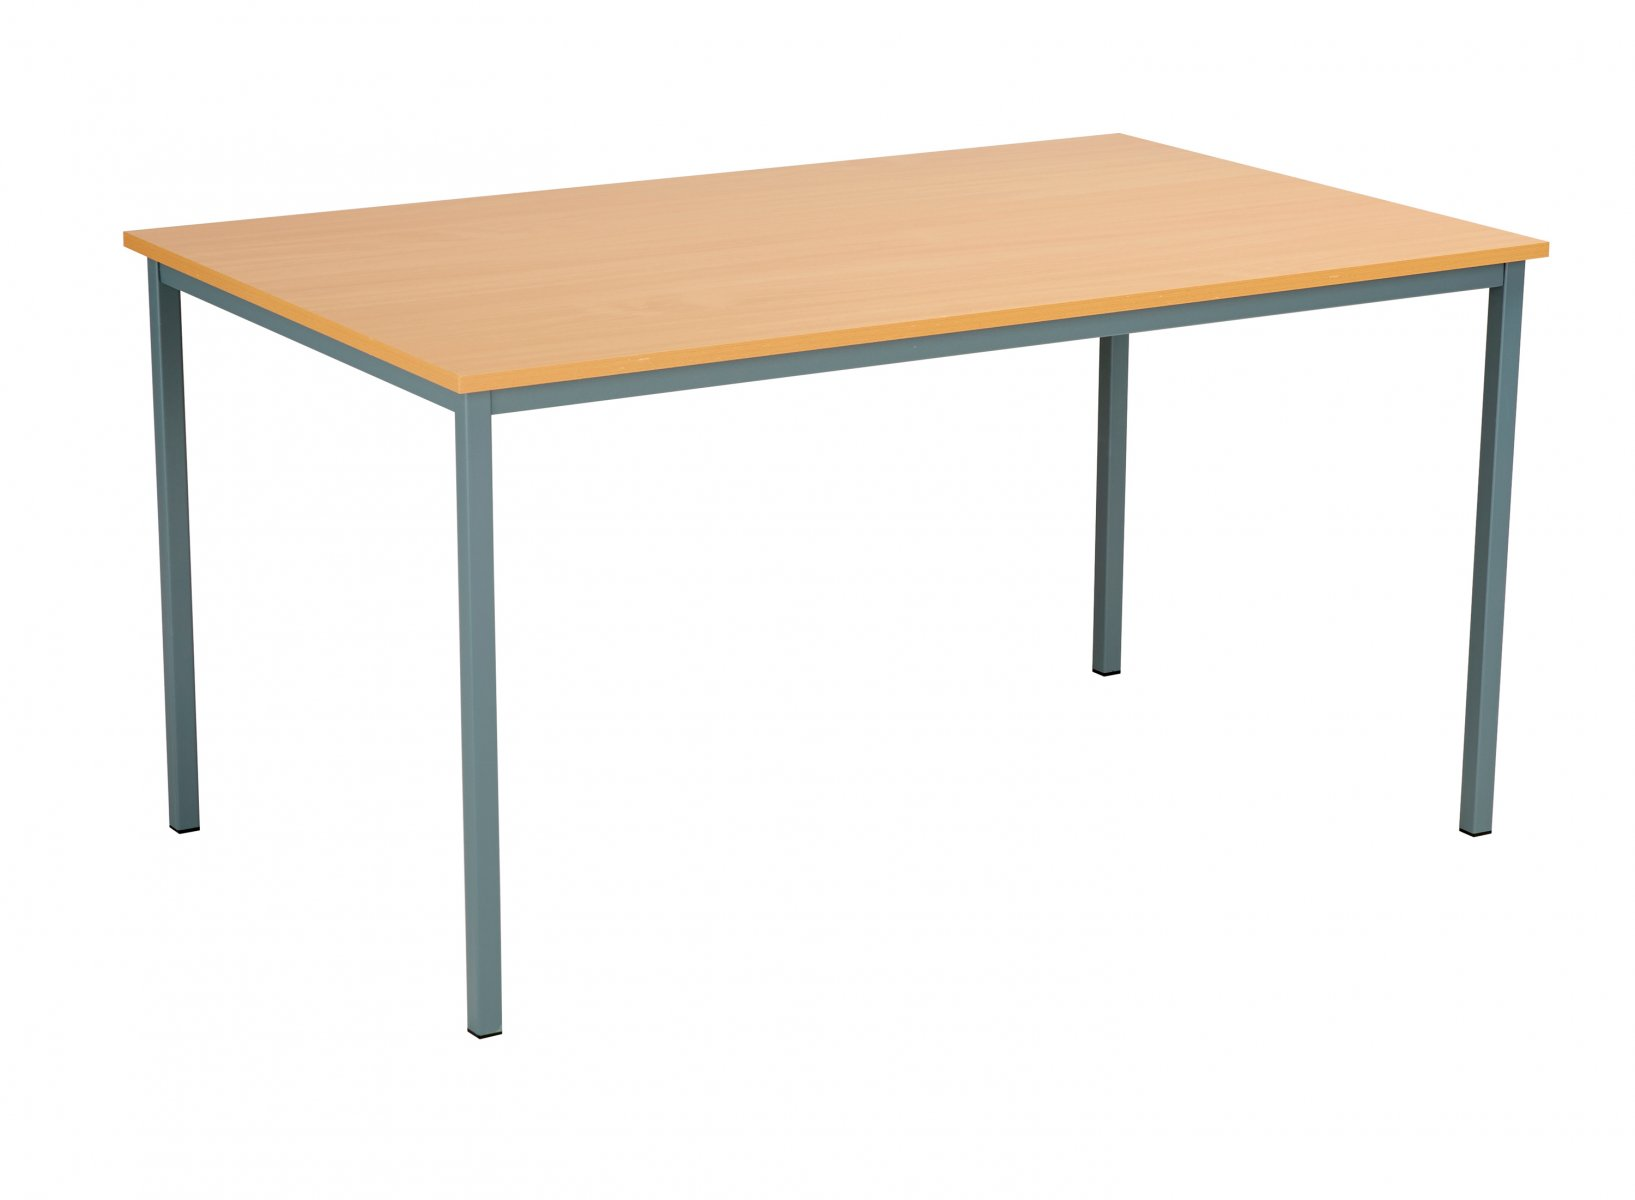 Eco 18 Rectangular 150 Multi-Purpose Table - Beech